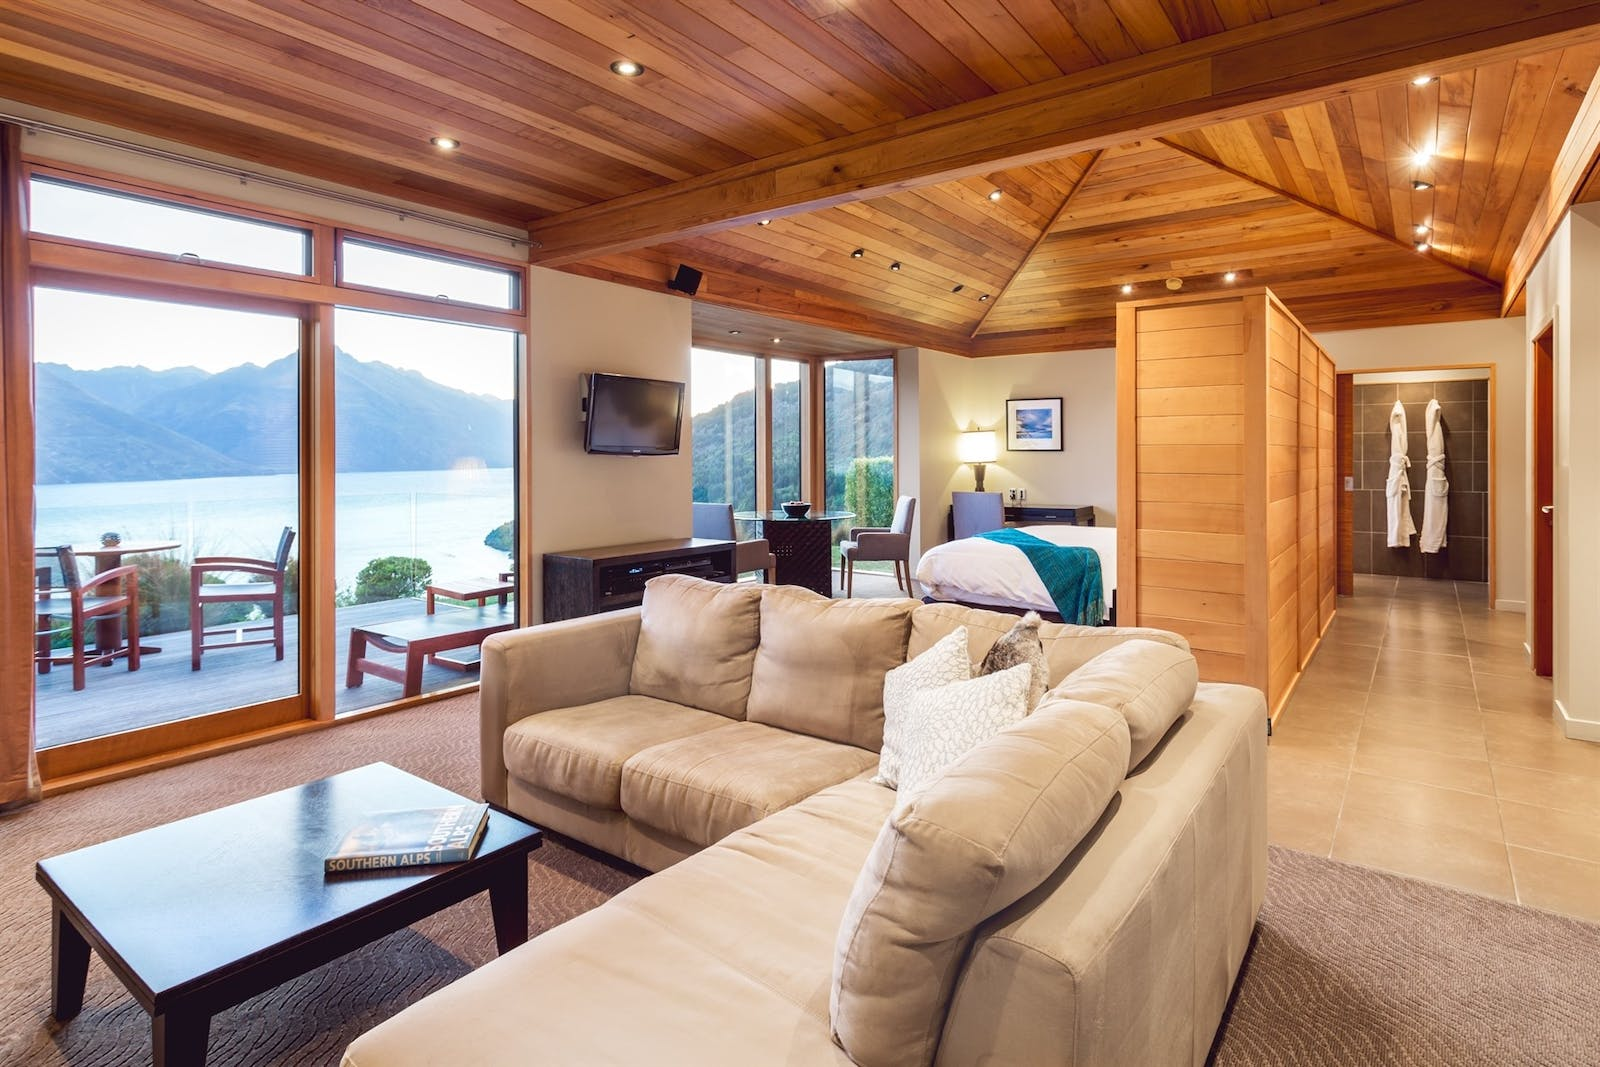 villa at azur lodge, Queenstown, South Island, New Zealand